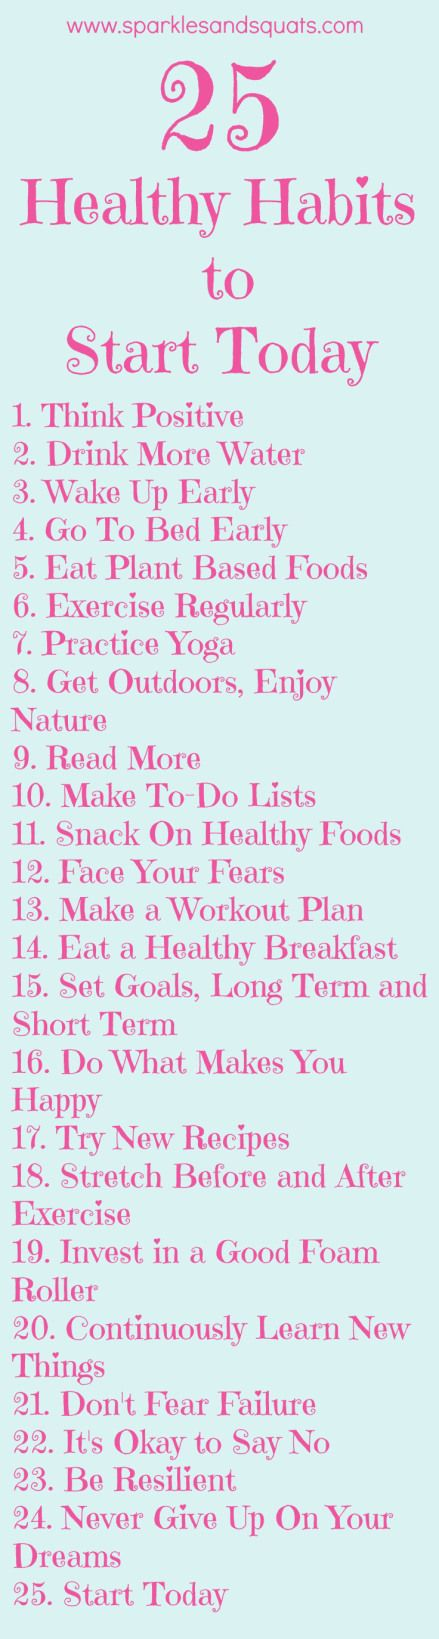 Living simply & living healthily - here are 25 healthy habits to cultivate today.